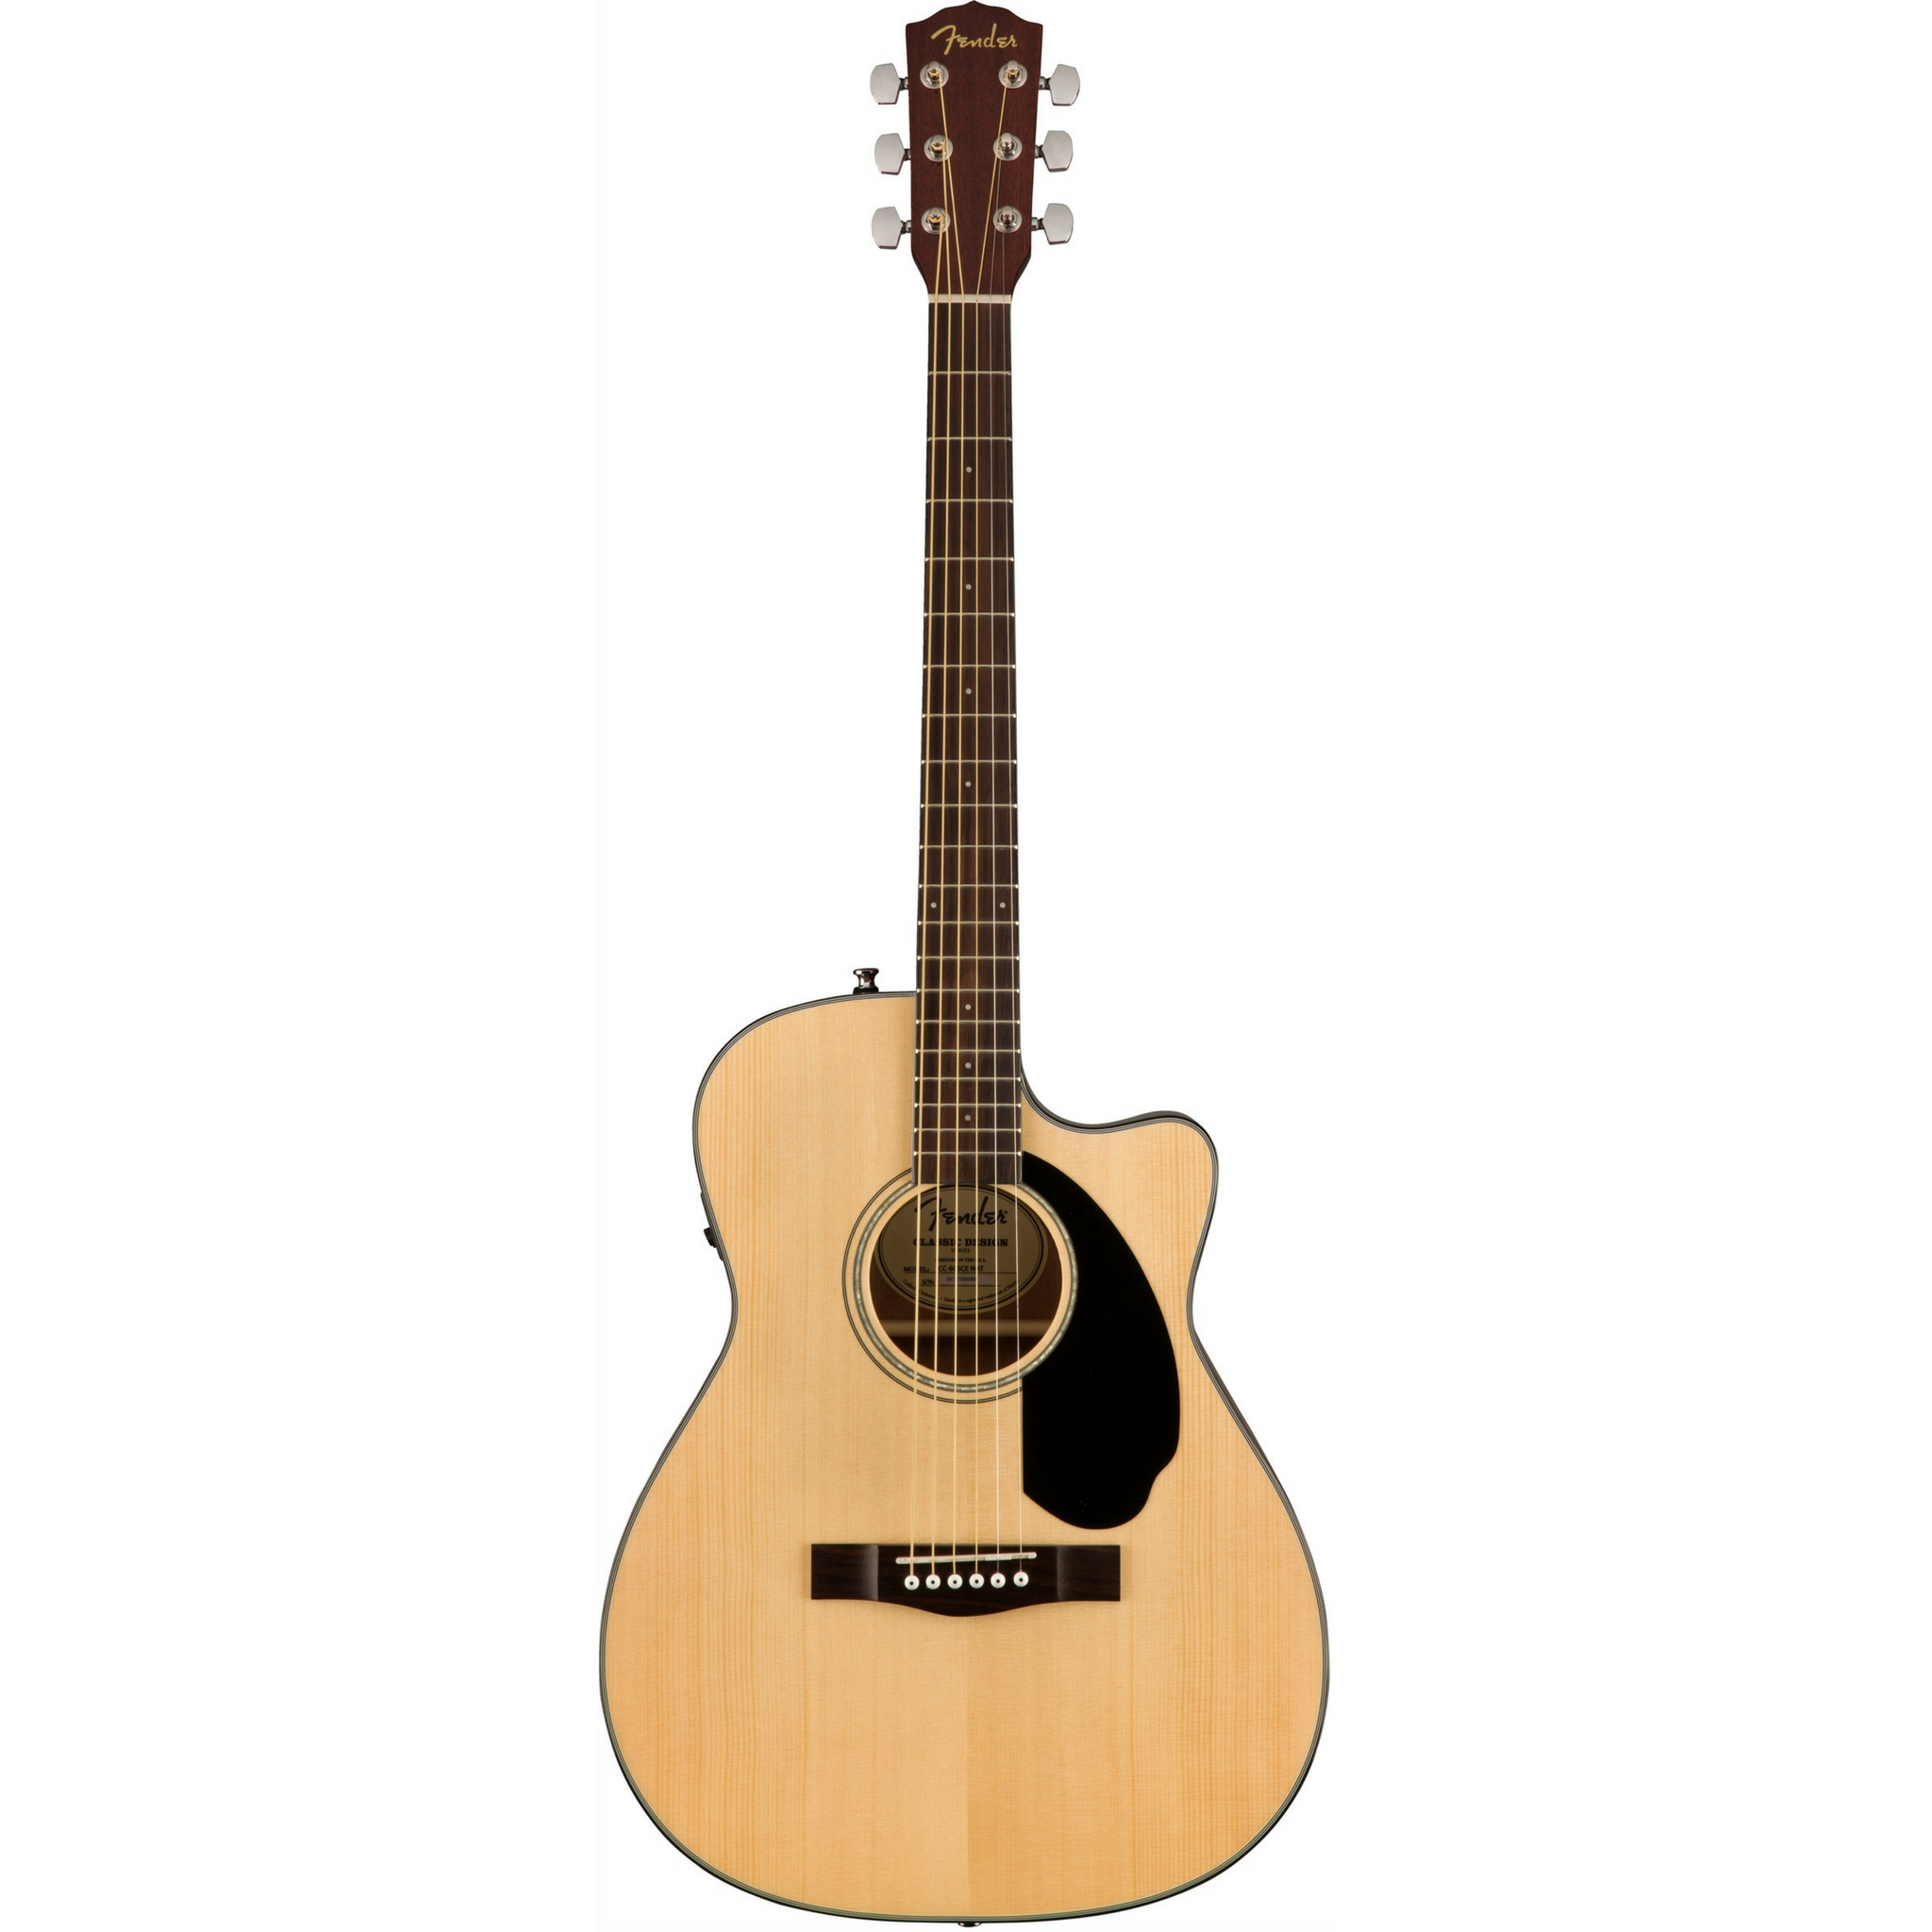 Fender CC-60SCE Acoustic Guitar Natural Display Photo